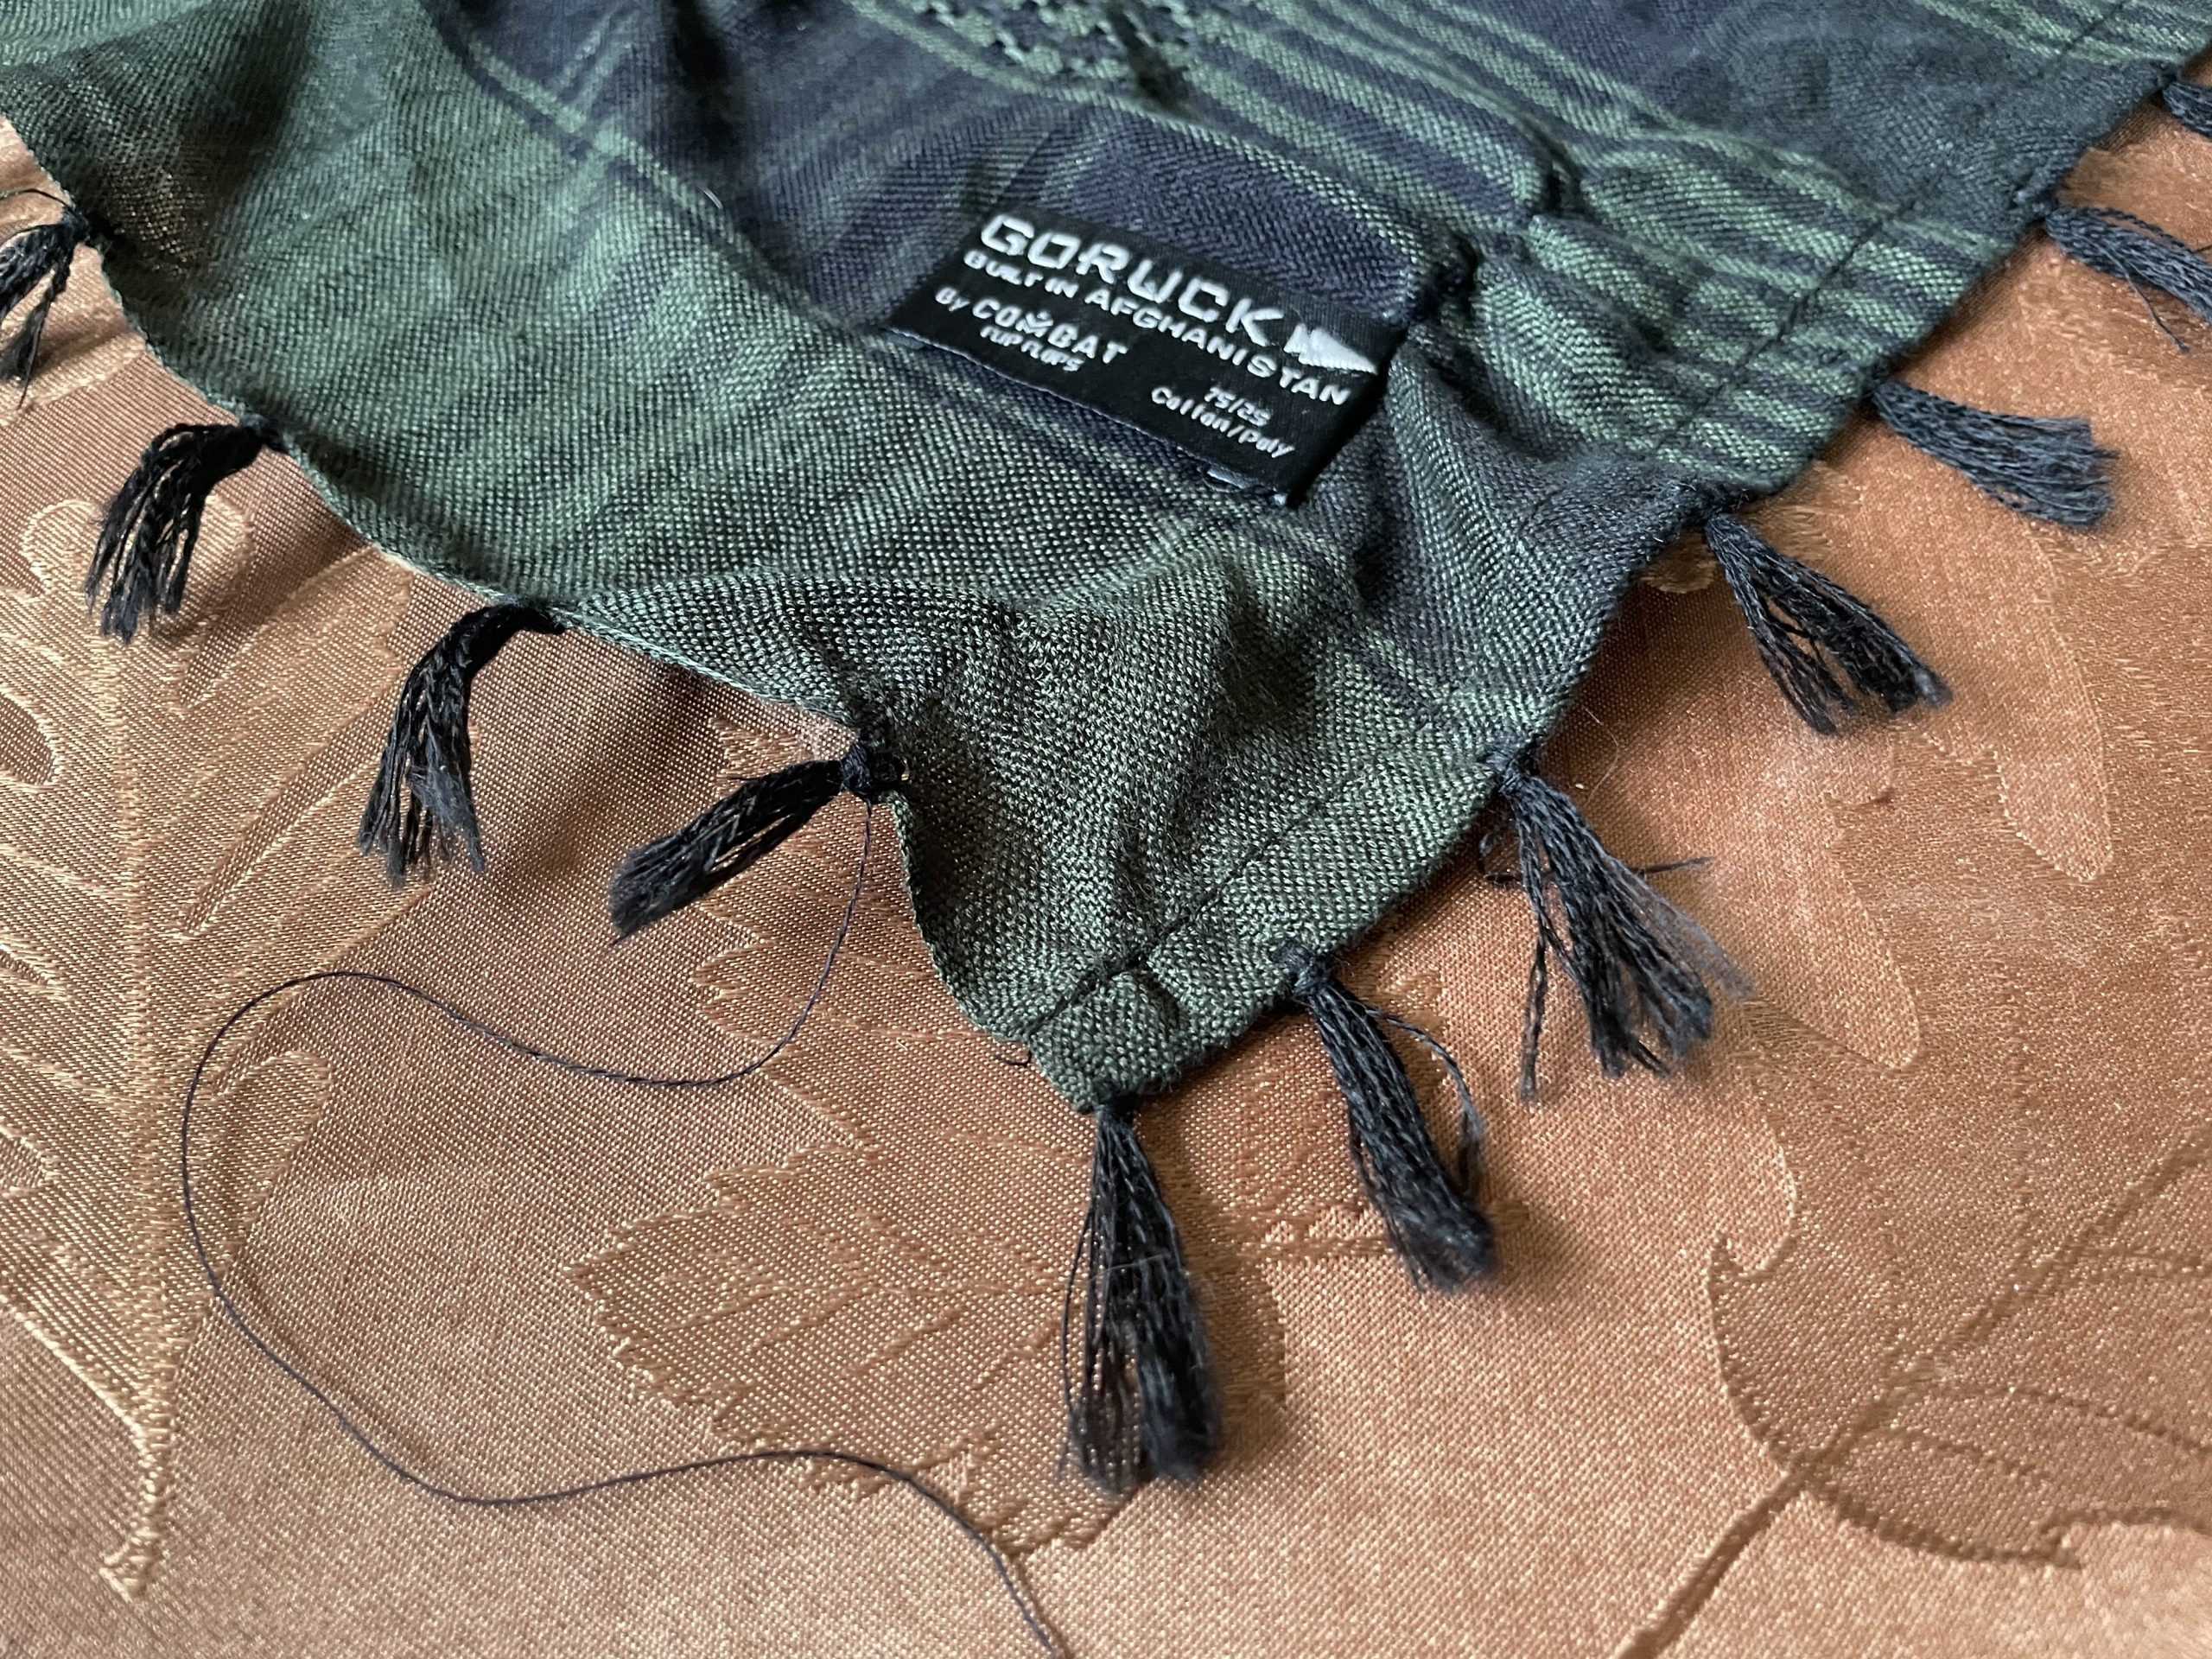 GORUCK Shemagh Review